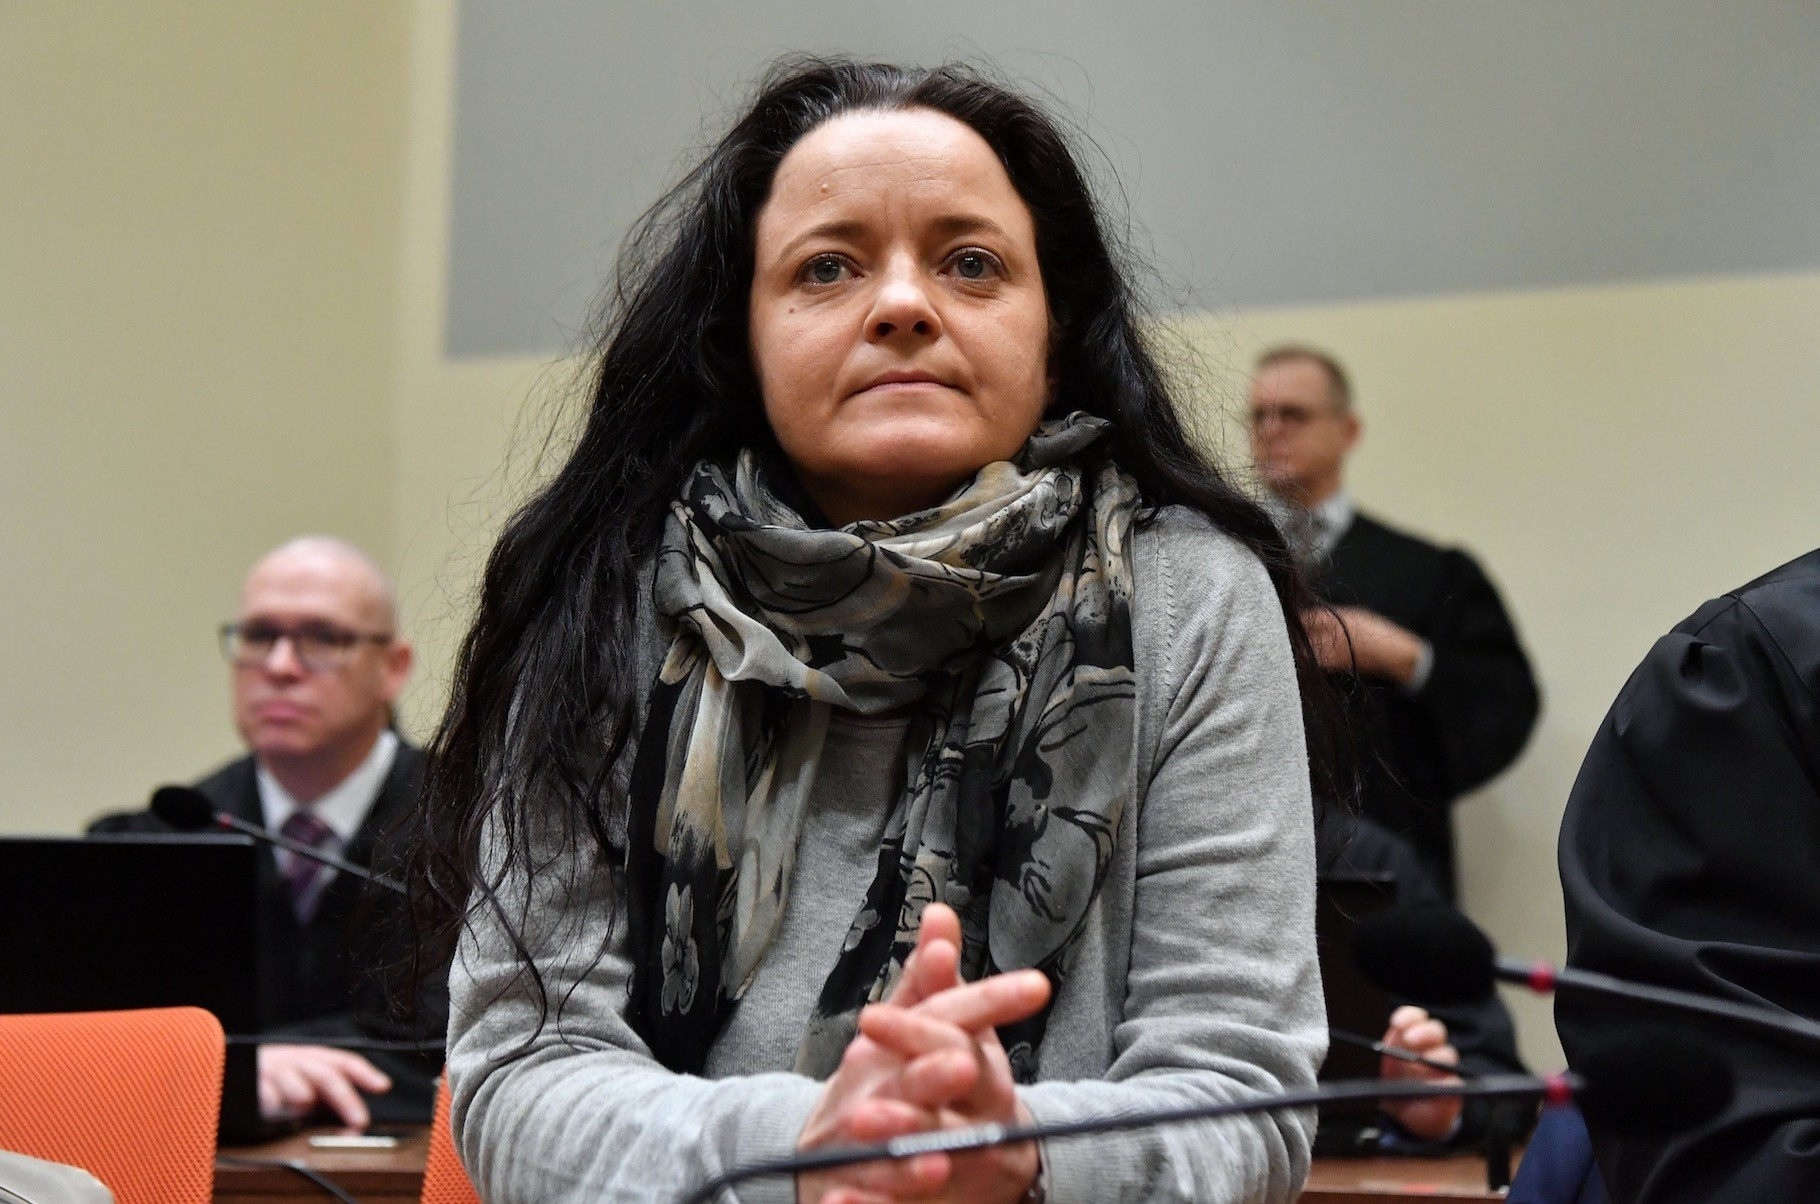 Beate Zschaepe, seen here in a Munich courtroom as defendant, is the only surviving member of the NSU and faces a life sentence if convicted.